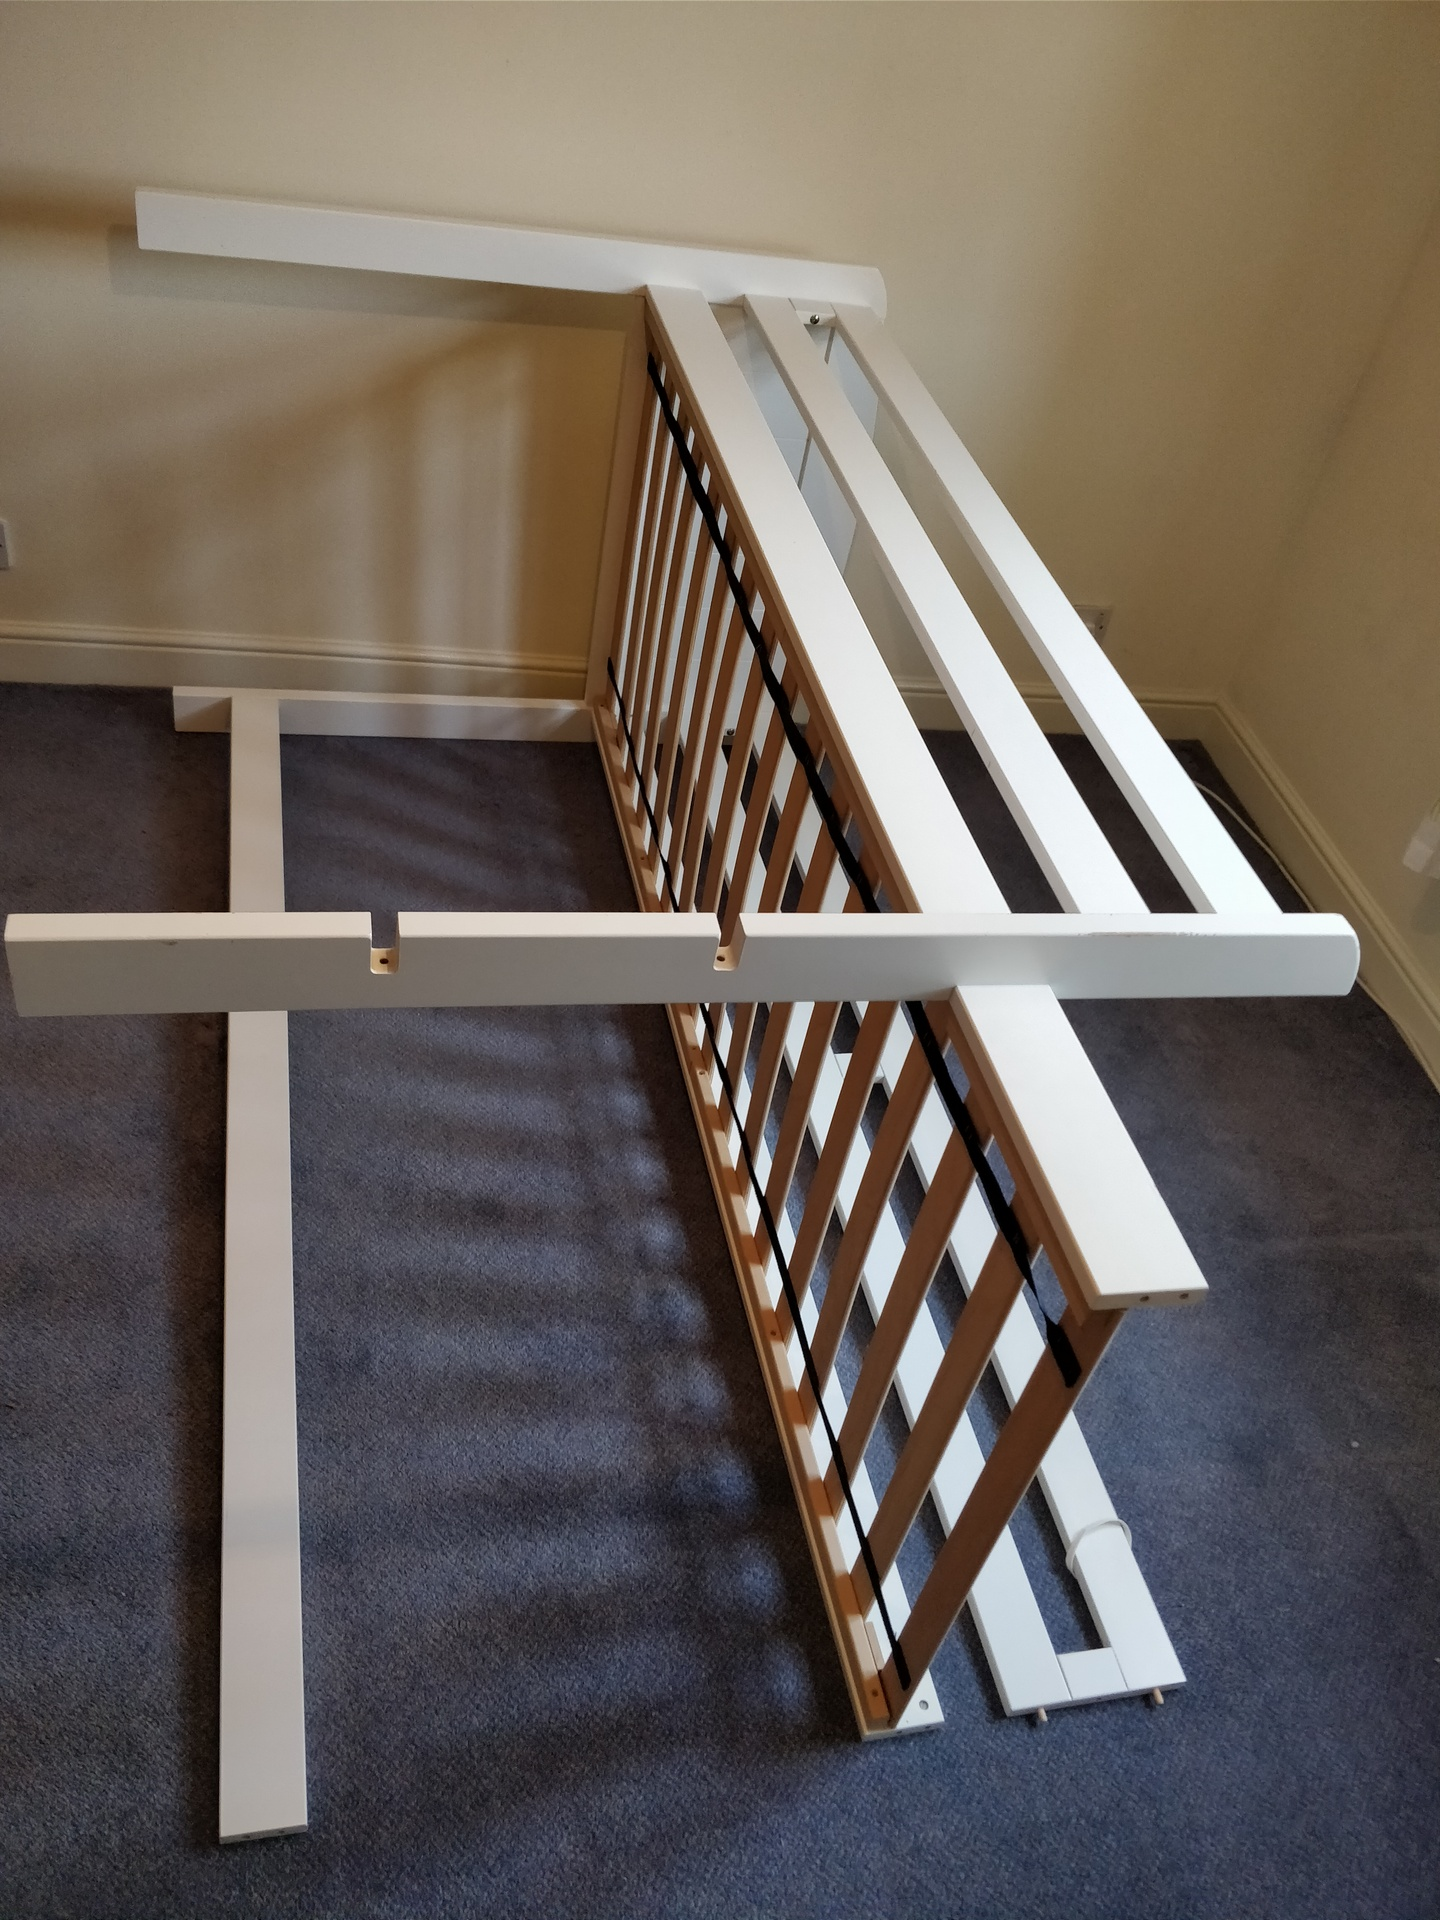 How to Dismantle a Bunk Bed 12